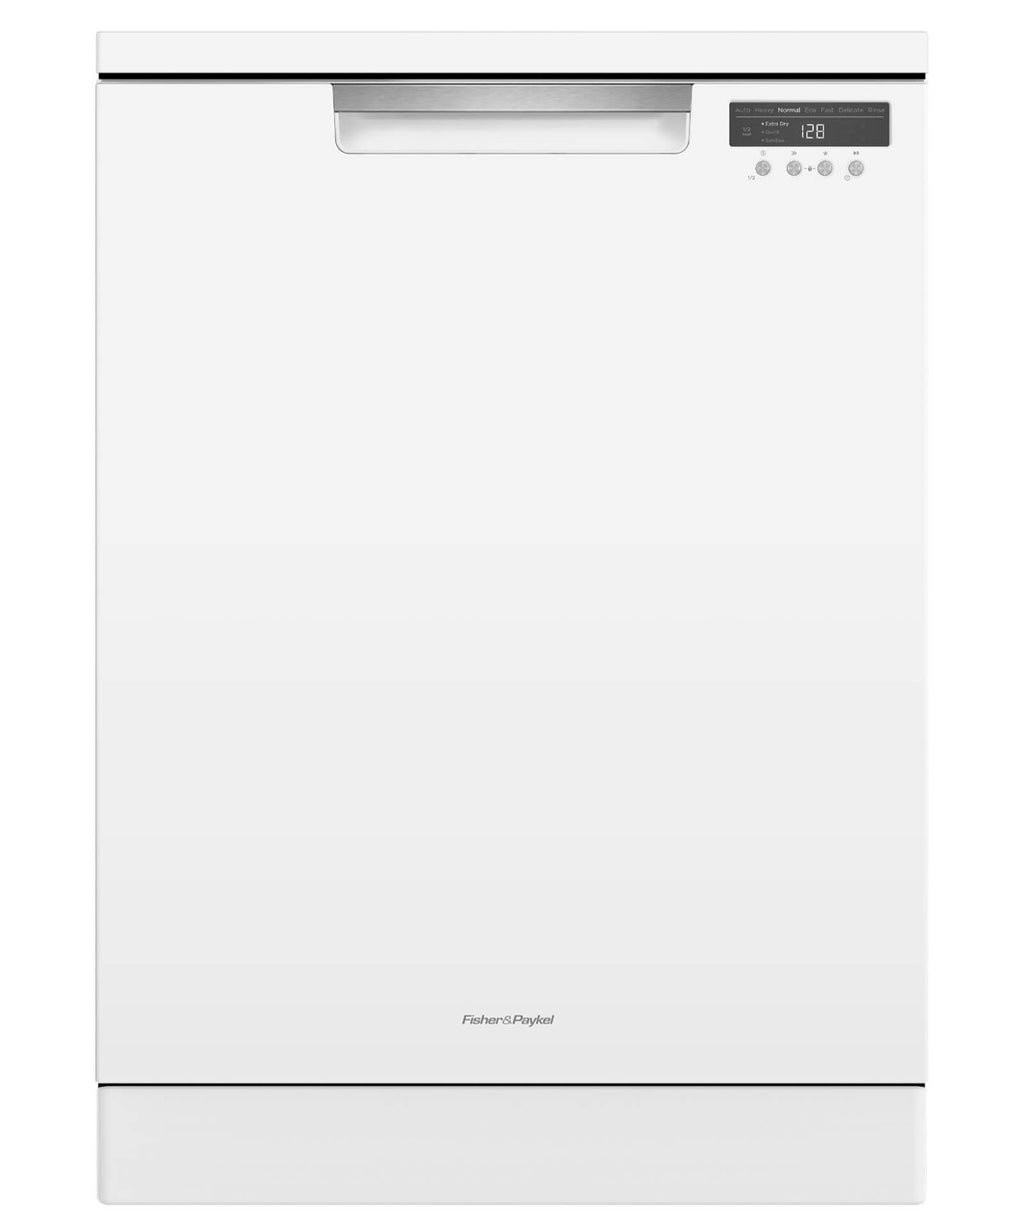 Fisher & Paykel DW60FC6W1 white freestanding dishwasher